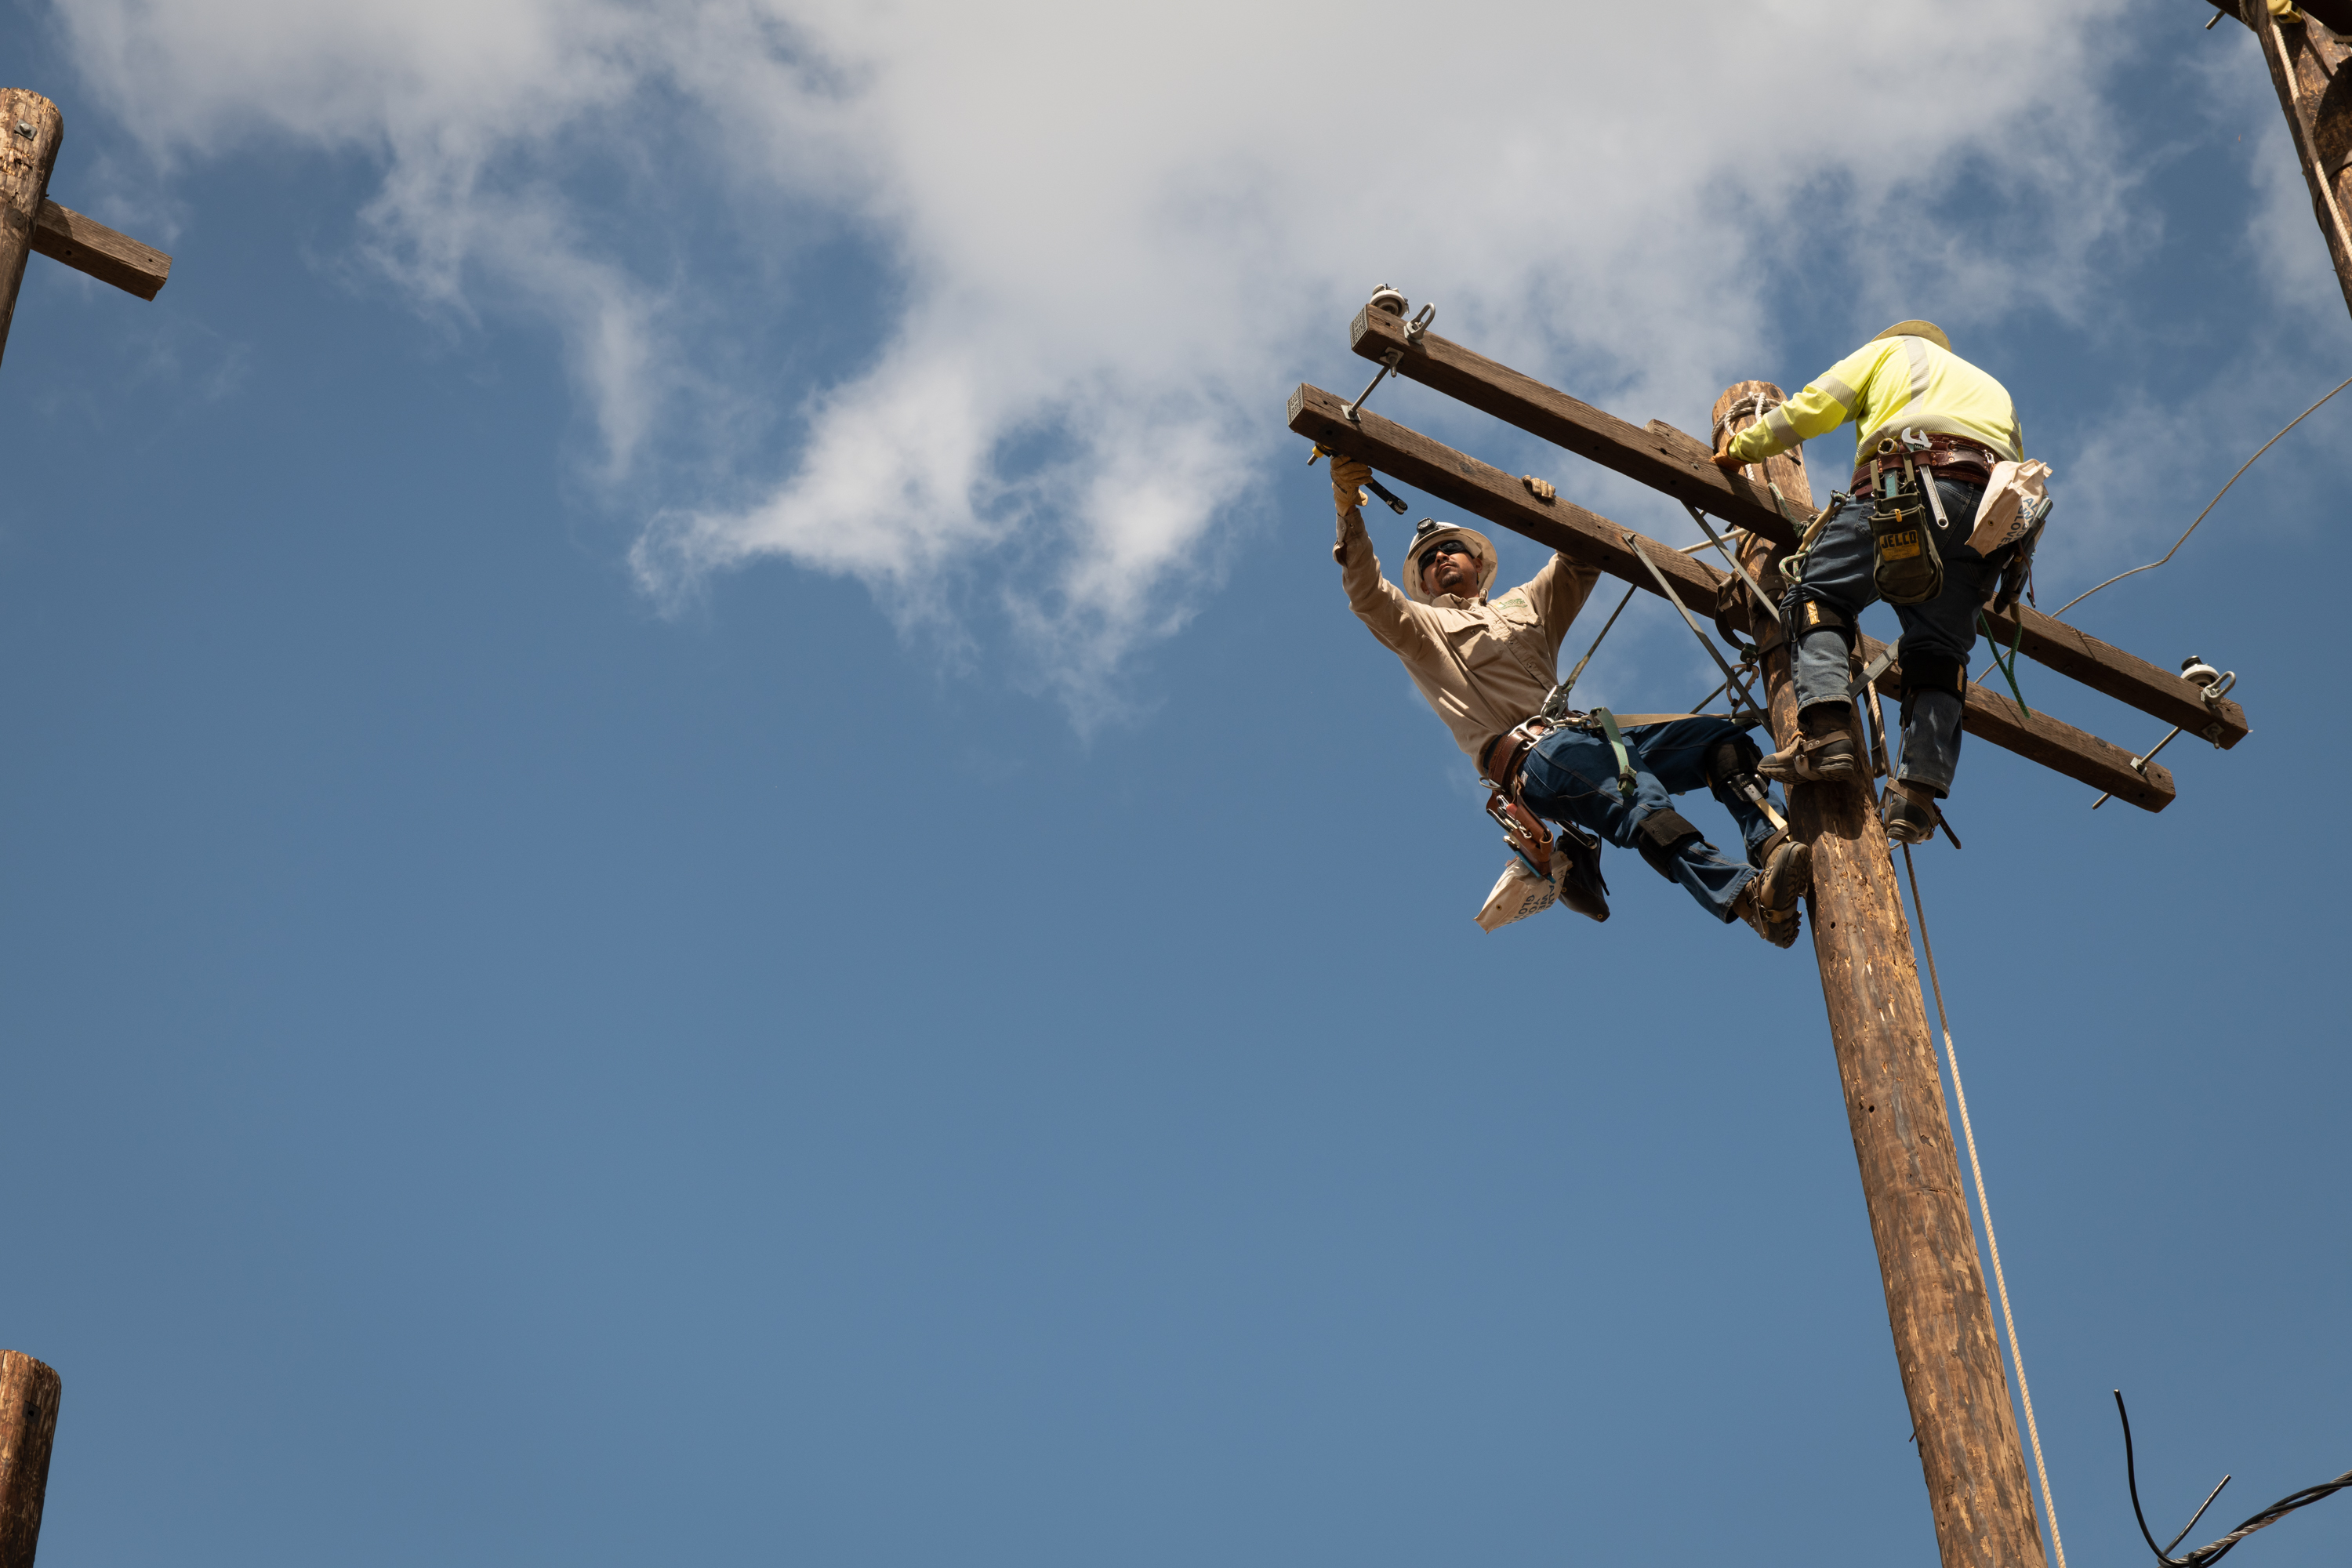 SCE linemen spend 1.25% of their life in the air every year.